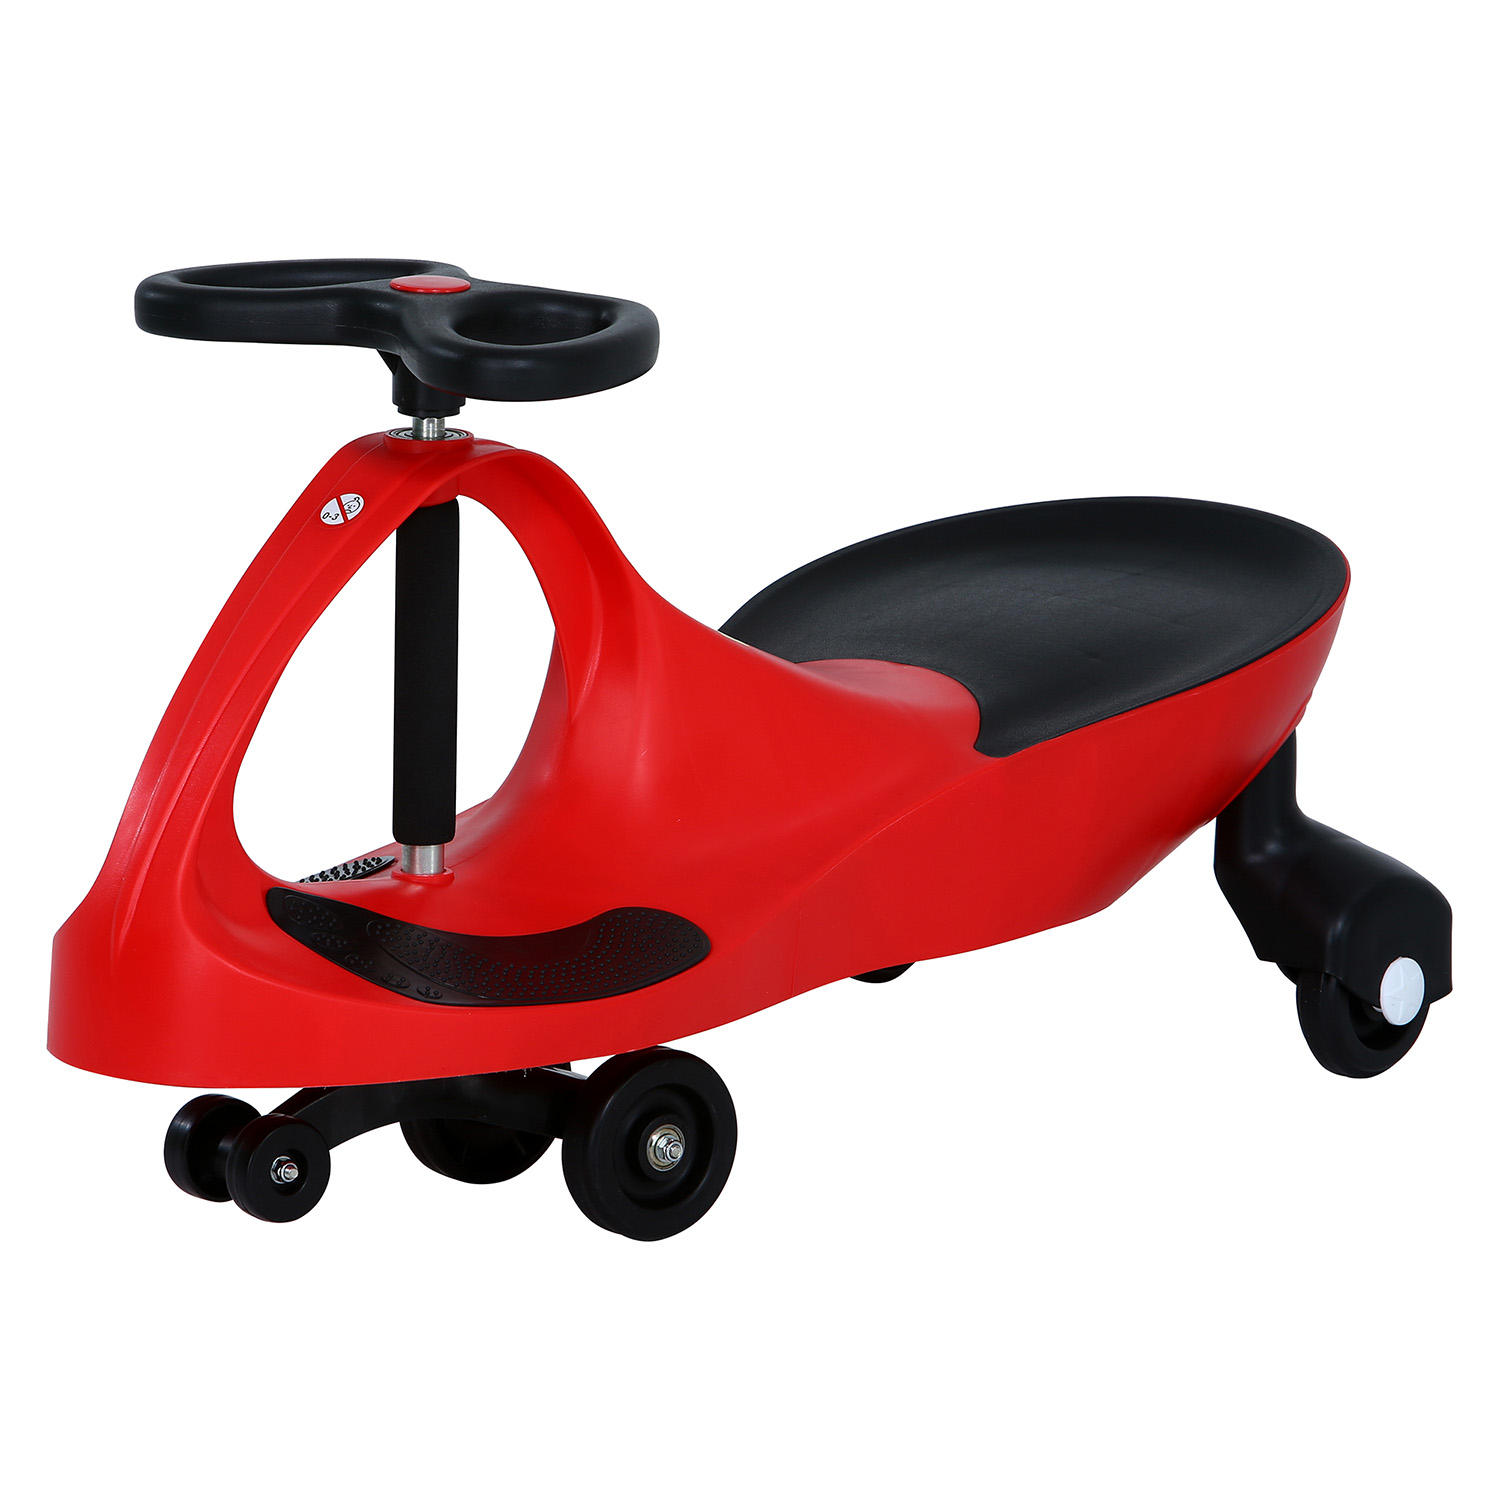 Wiggle Car Only $49.98 at Sam's Club!